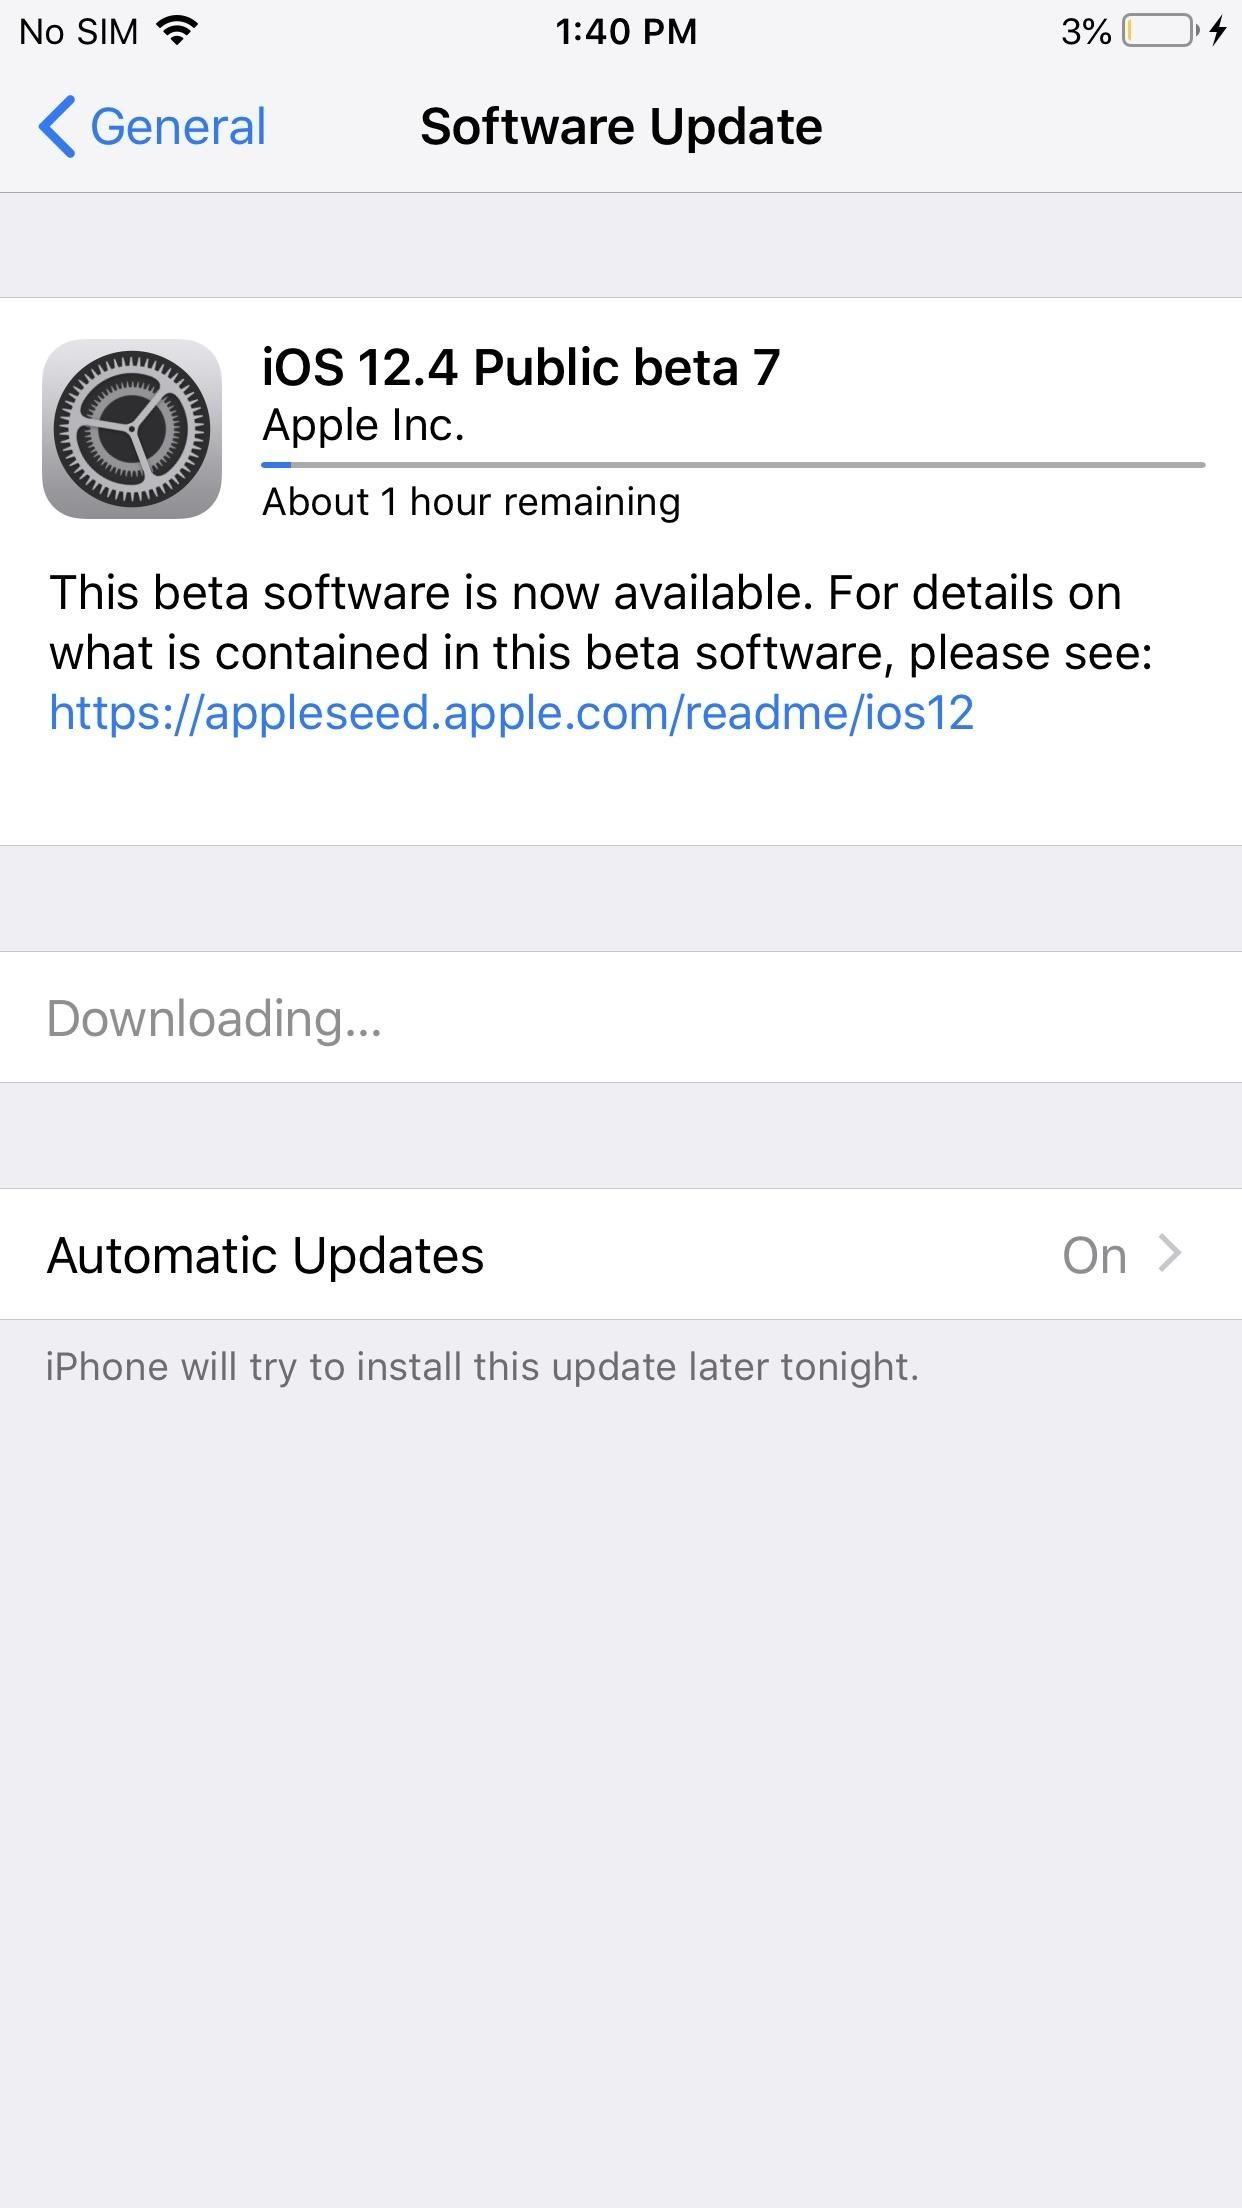 Apple Just Released iOS 12.4 Beta 7 for iPhone, Indicating Apple Card Is Near